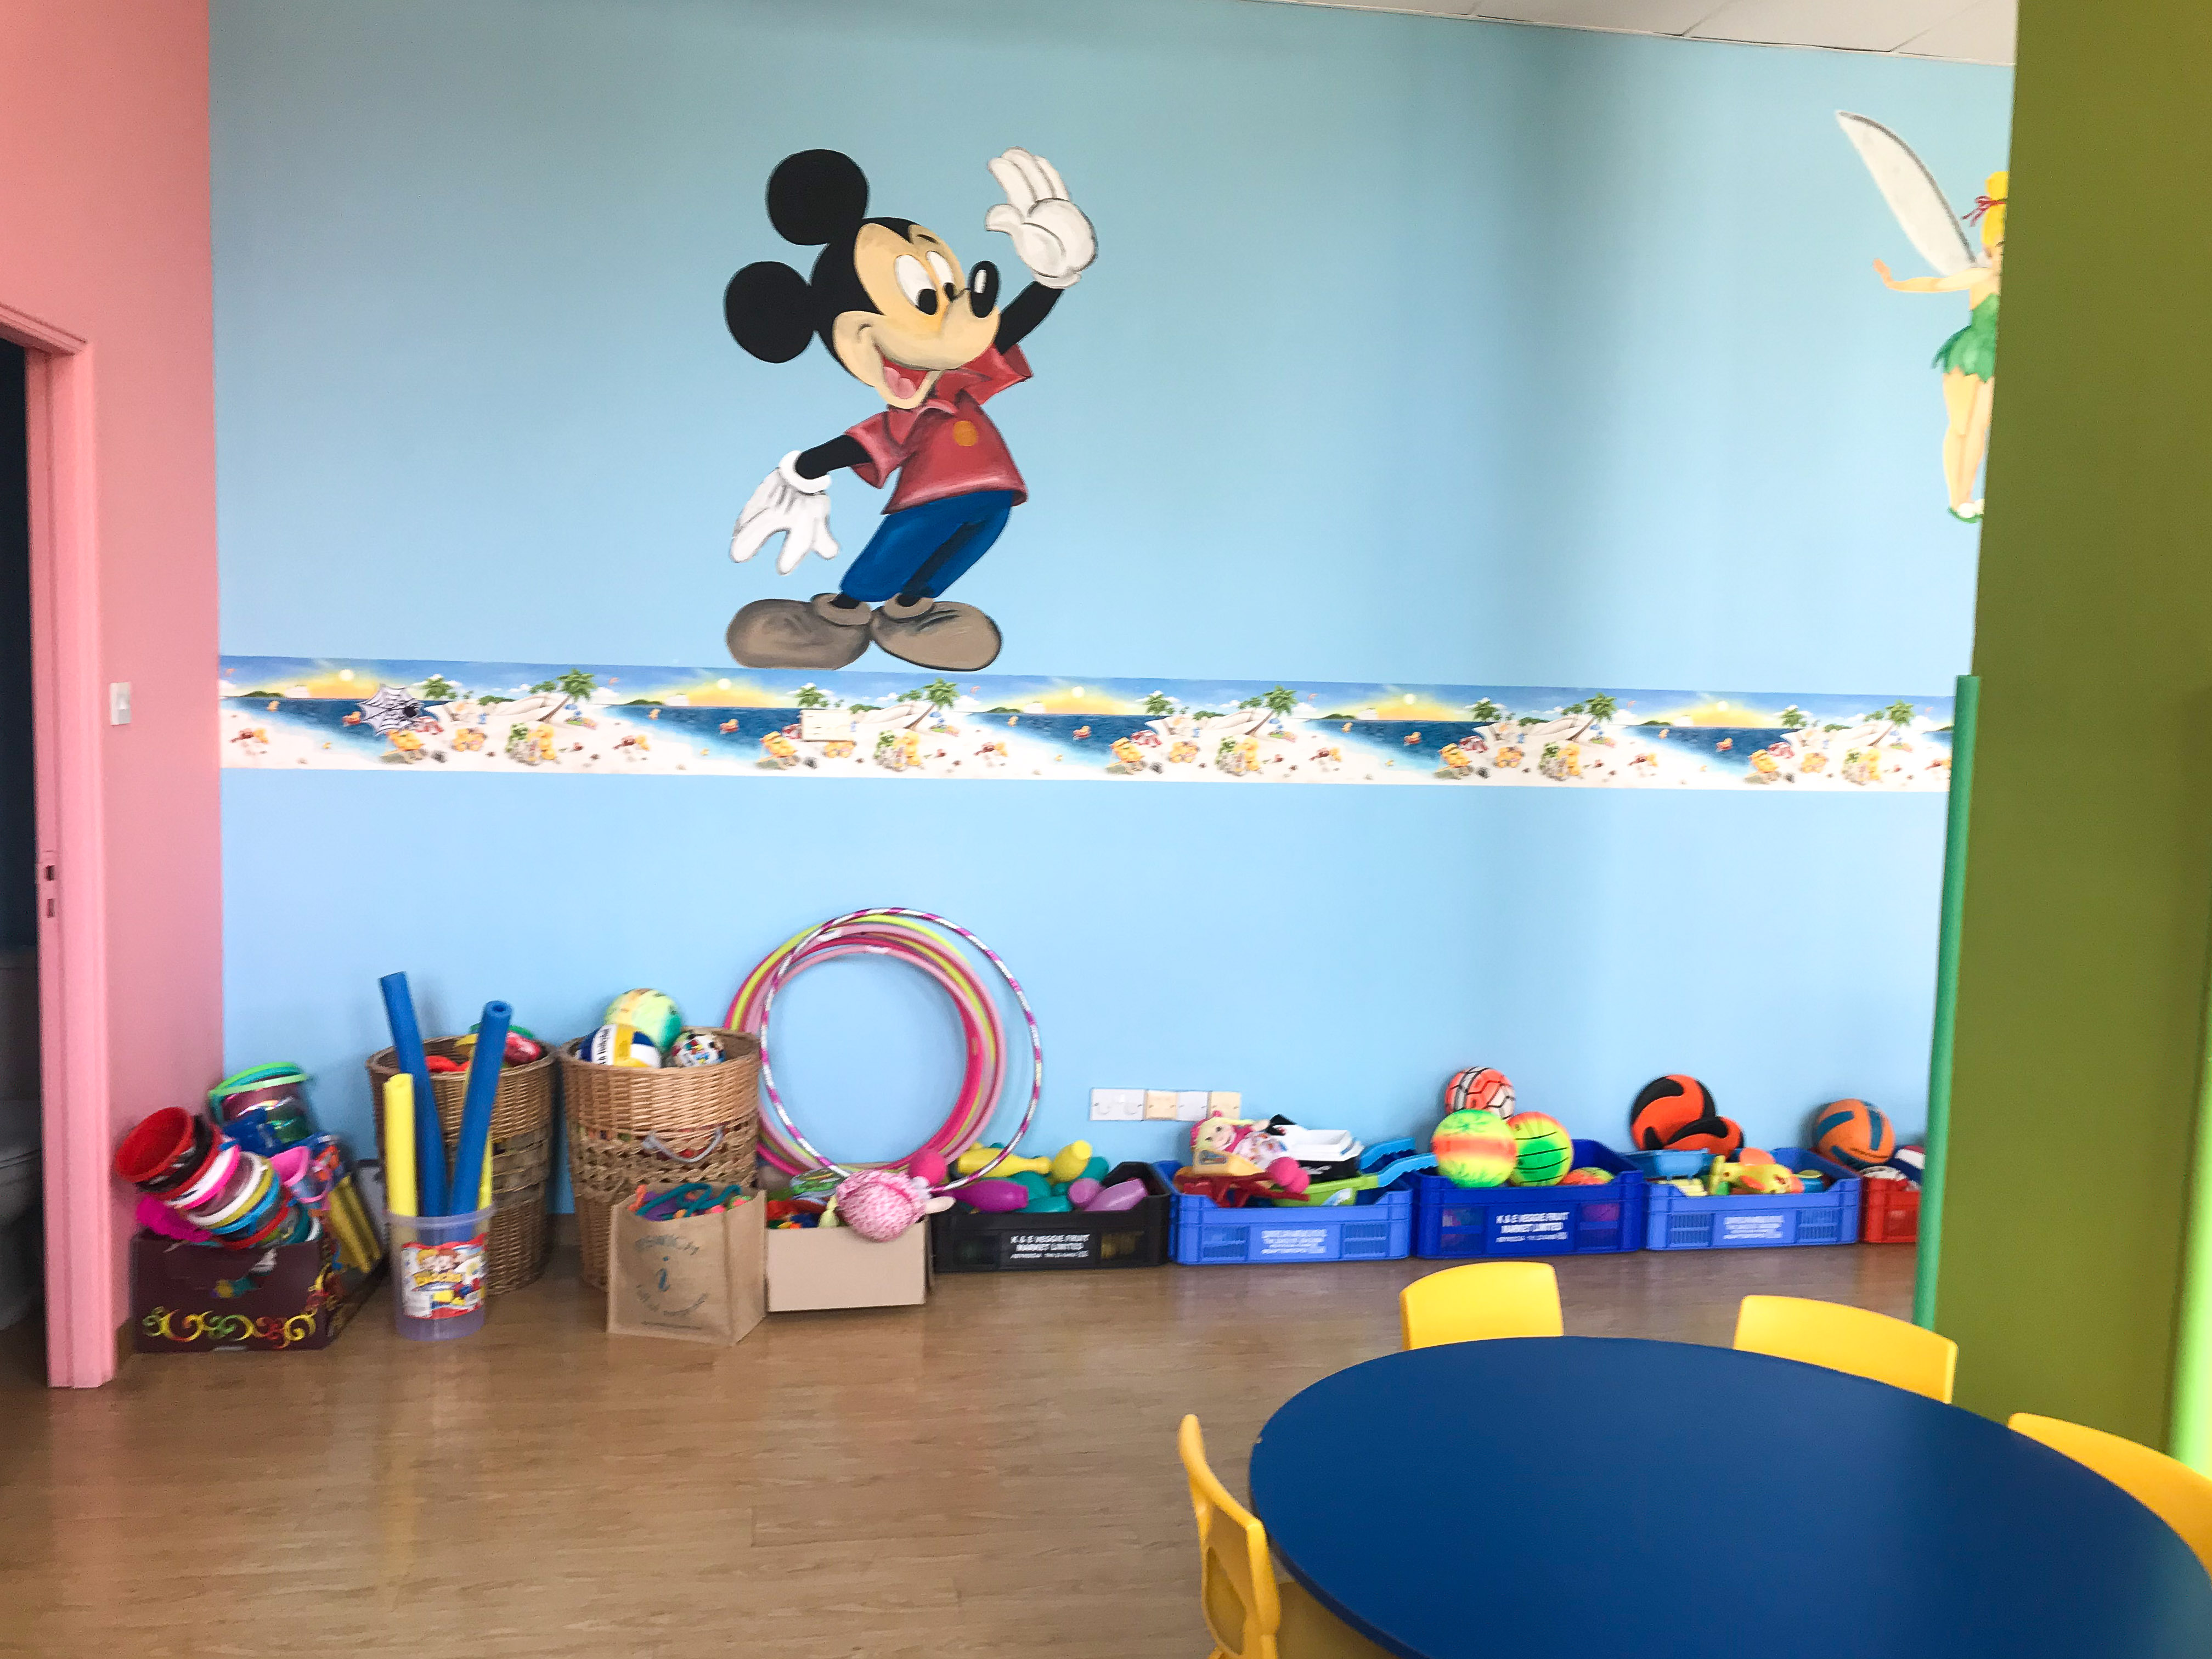 best hotels for kids in cyprus - Athena Beach Hotel Cyprus Kid's Club